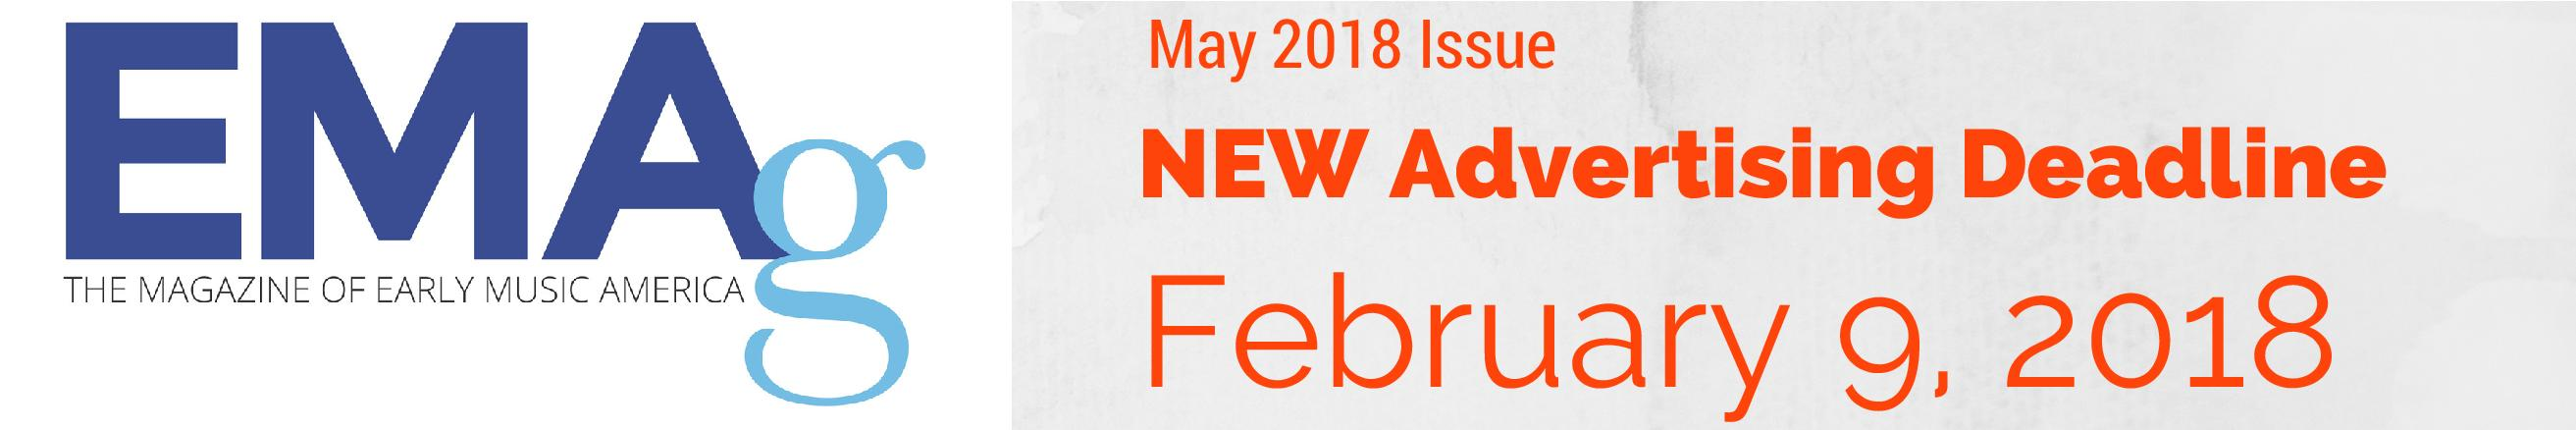 EMAg-ad-reservation-deadline-May-2018-issue-page-001.jpg